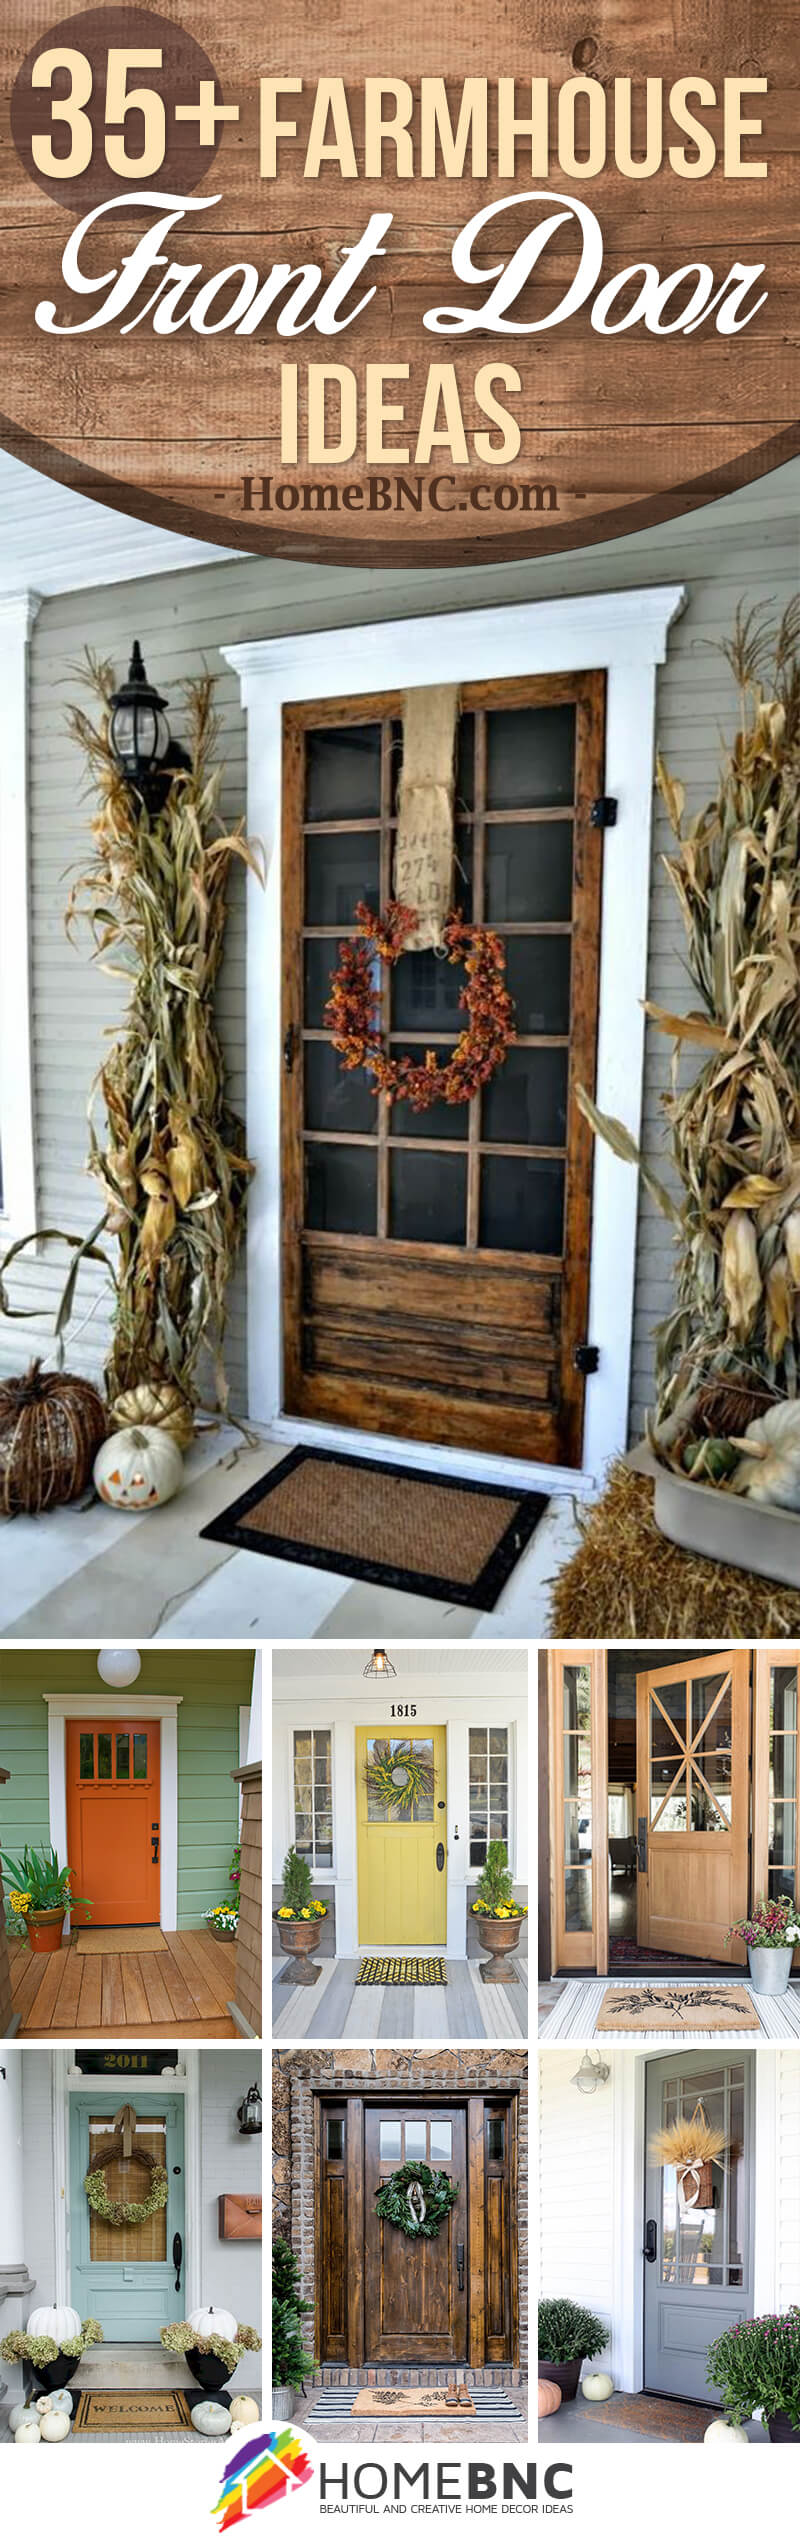 37 Best Farmhouse Front Door Ideas And Designs For 2021